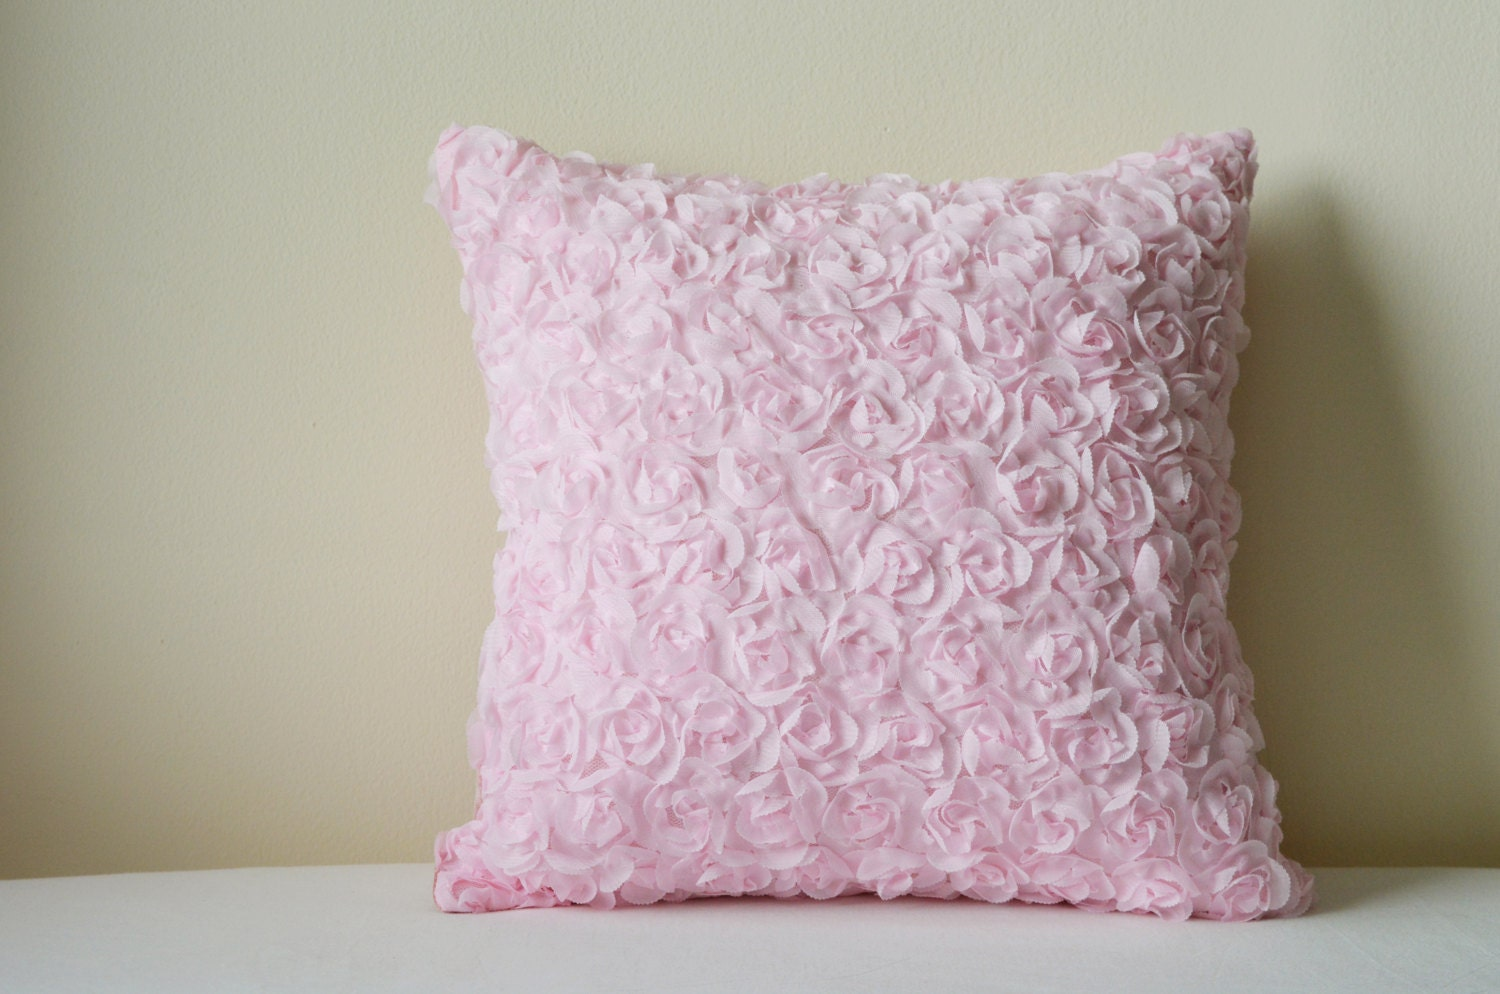 Light Pink Rosette Pillow Cover 17-D Pink Roses Cushion Cover